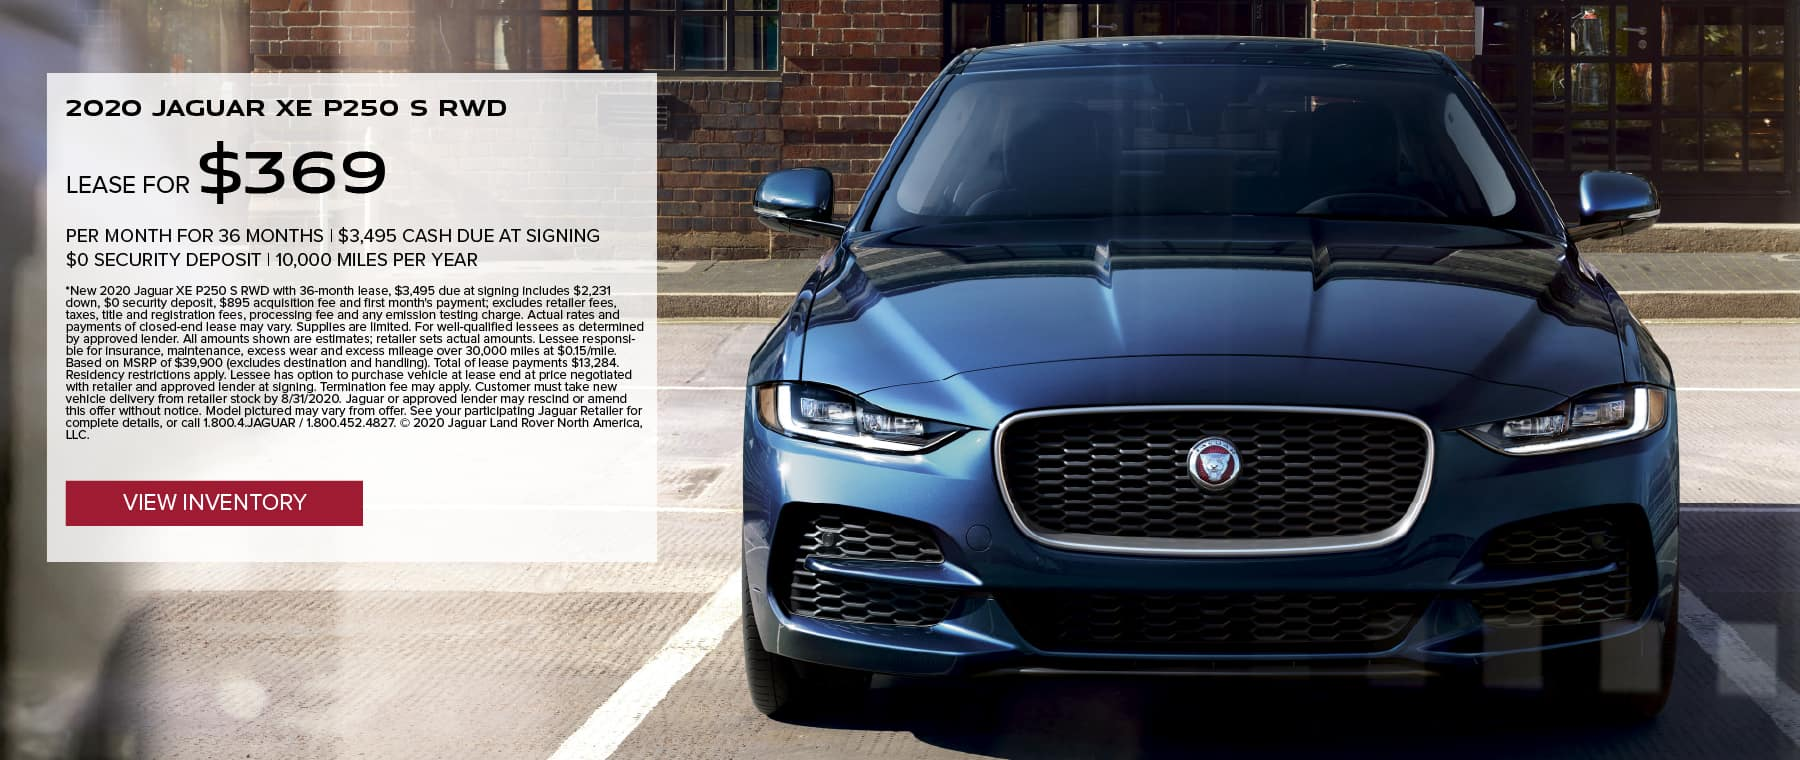 2020 JAGUAR XE P250 S RWD. $369 PER MONTH. 36 MONTH LEASE TERM WITH $3,495 DUE AT SIGNING. $0 SECURITY DEPOSIT. 10,000 MILES PER YEAR. EXCLUDES RETAILER FEES, TAXES, TITLE AND REGISTRATION FEES, PROCESSING FEE AND ANY EMISSION TESTING CHARGE. OFFER ENDS 8/31/2020. VIEW INVENTORY. BLUE JAGUAR XE PARKED IN FRONT OF SHOP WINDOW.